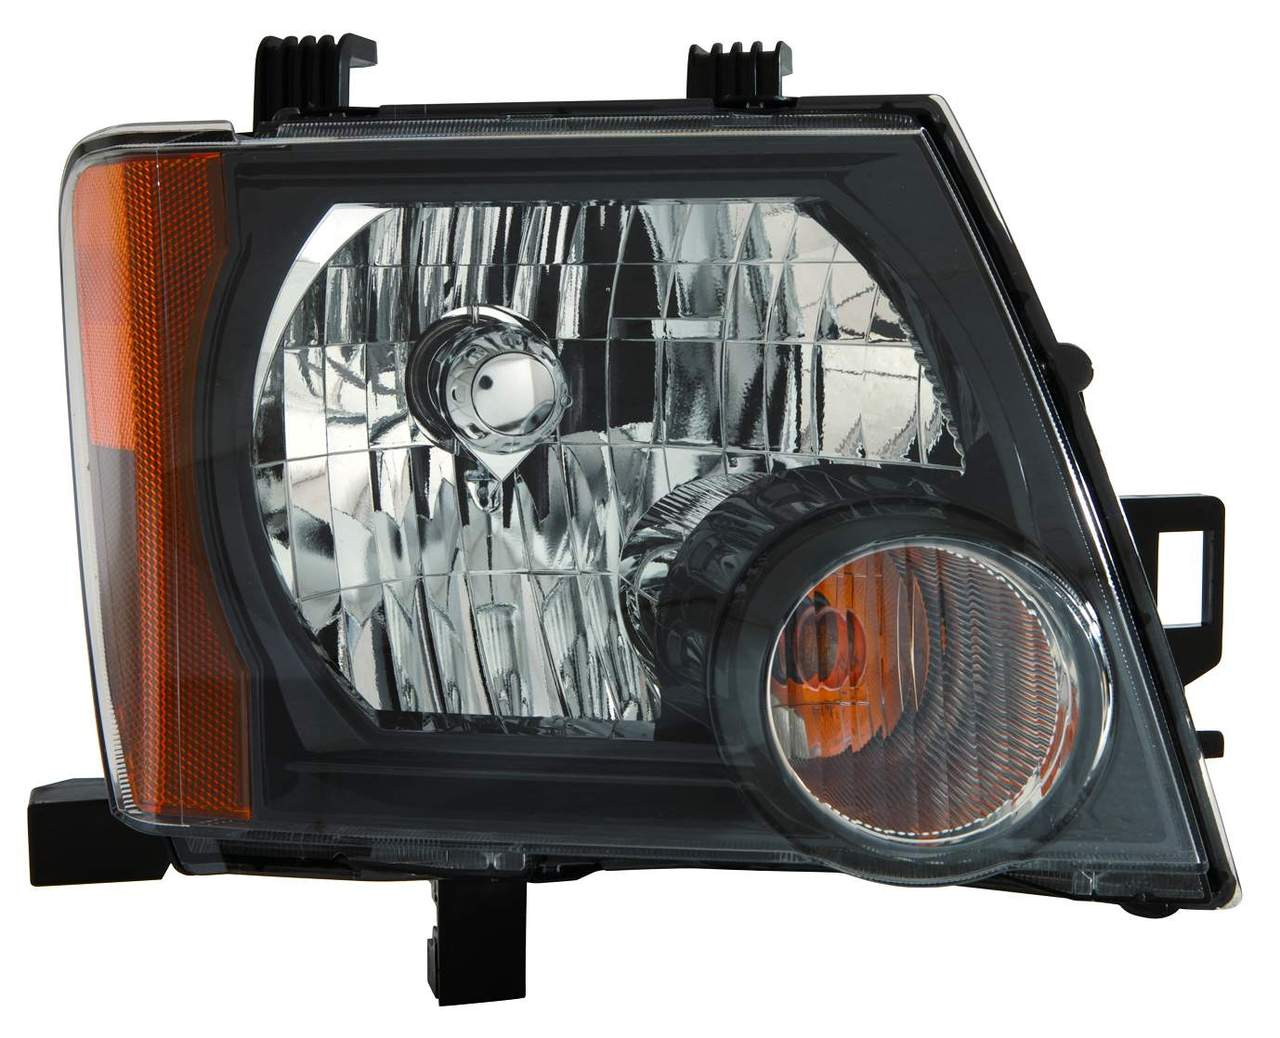 Nissan Xterra 2009 2010 2011 2012 2013 2014 2015 right passenger headlight S / X model